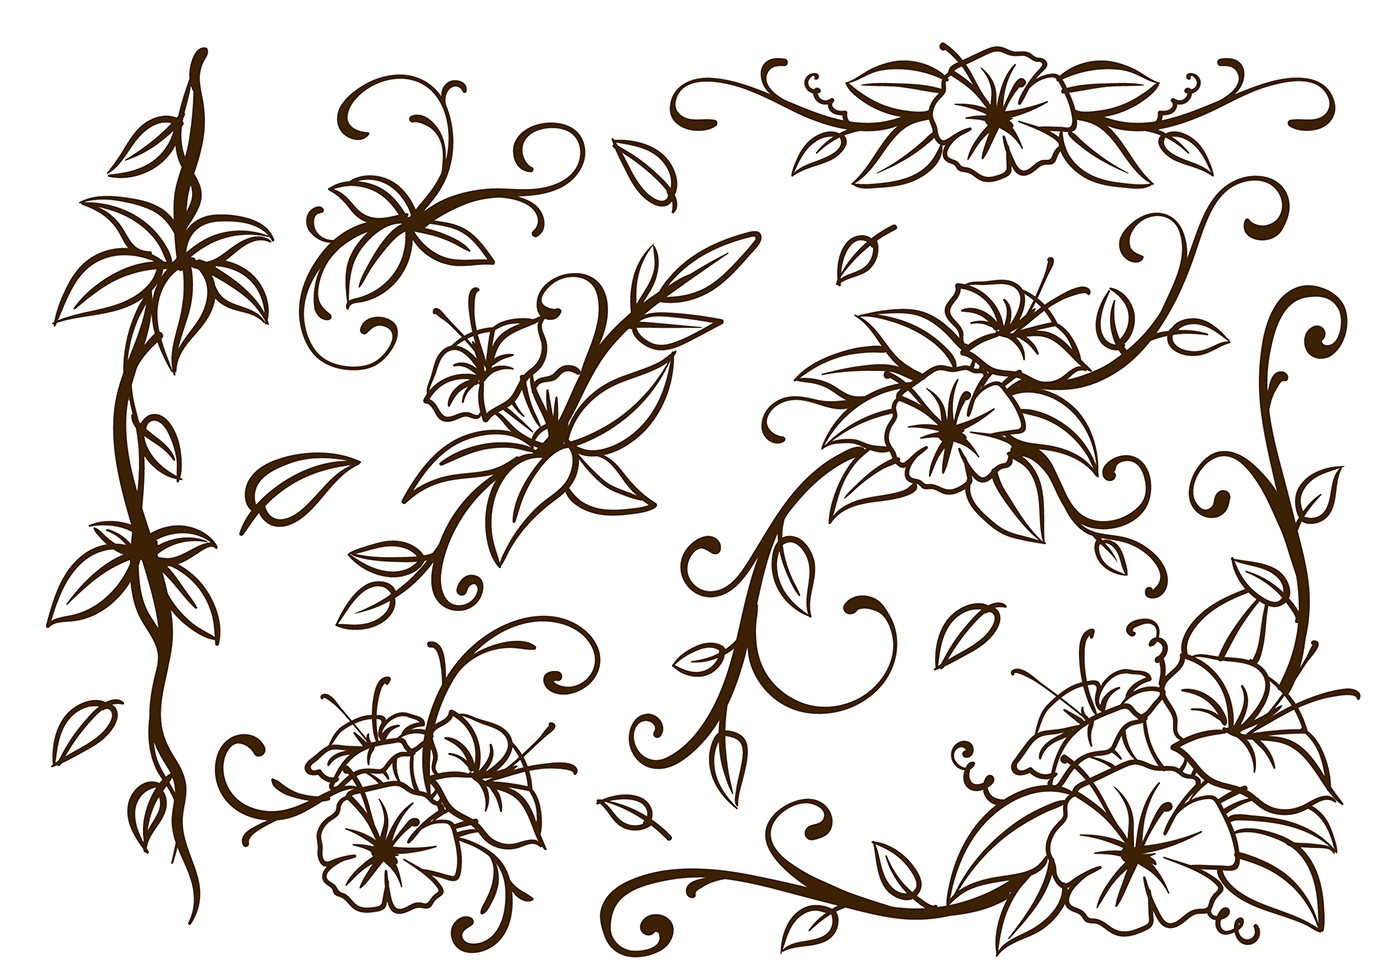 Decorative Flowers And & Swirls Vector Images (over 44 )